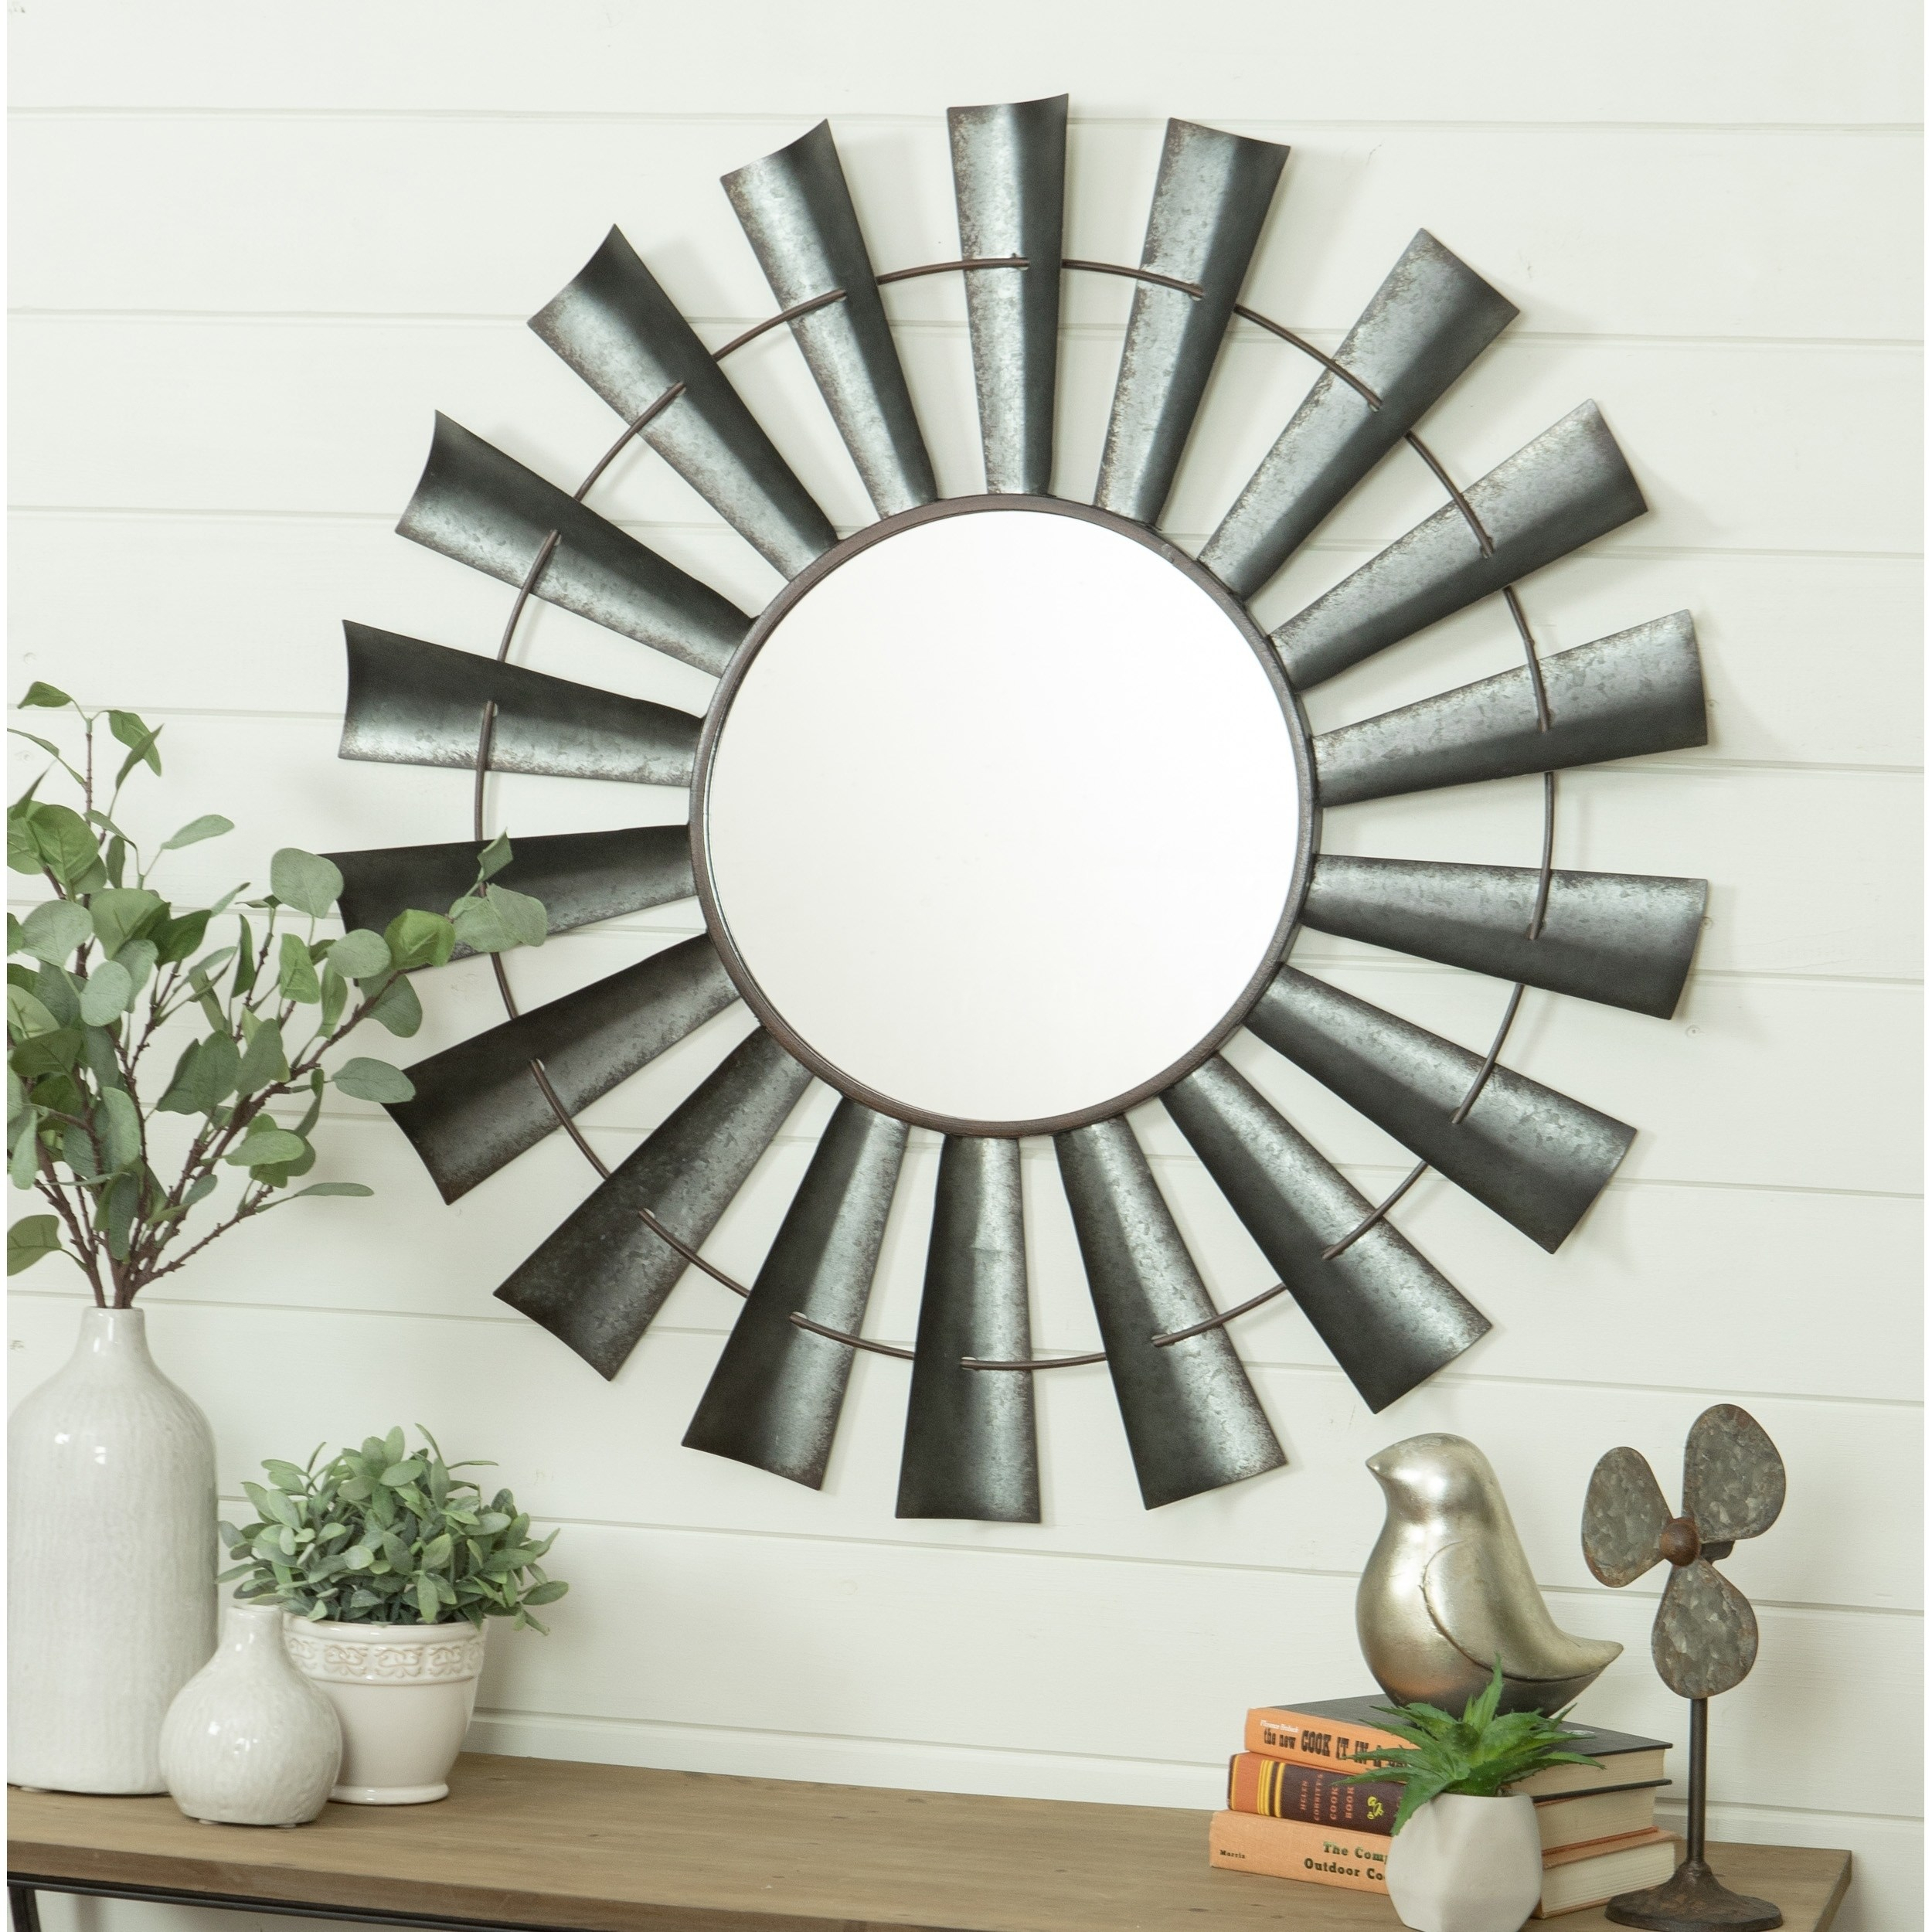 Bloomfield Windmill Wall Mirror – Grey – N/a, Aspire In Perillo Burst Wood Accent Mirrors (View 19 of 20)